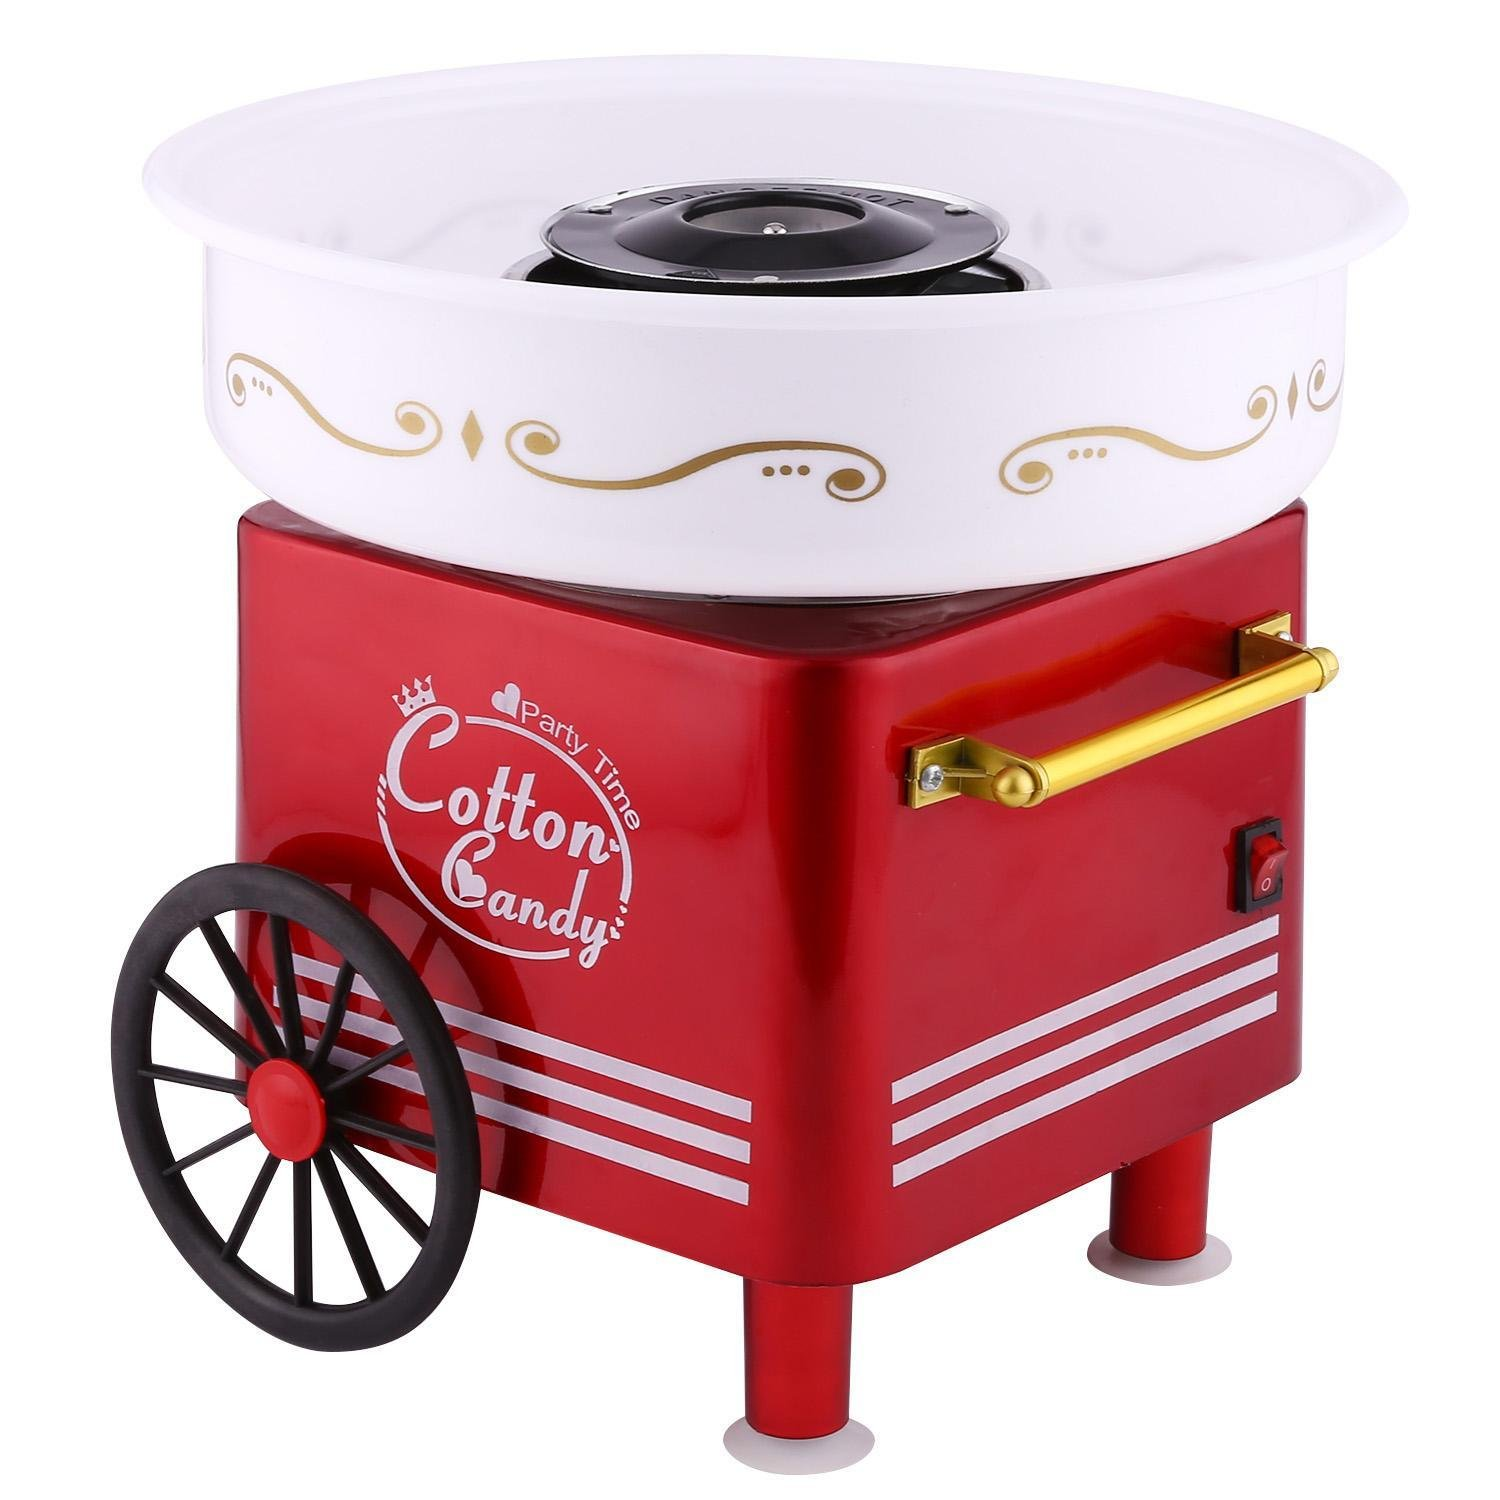 Cosway Mini Stainless Steel Cute Cotton Candy Machine for Kid Child Family Party (Red)